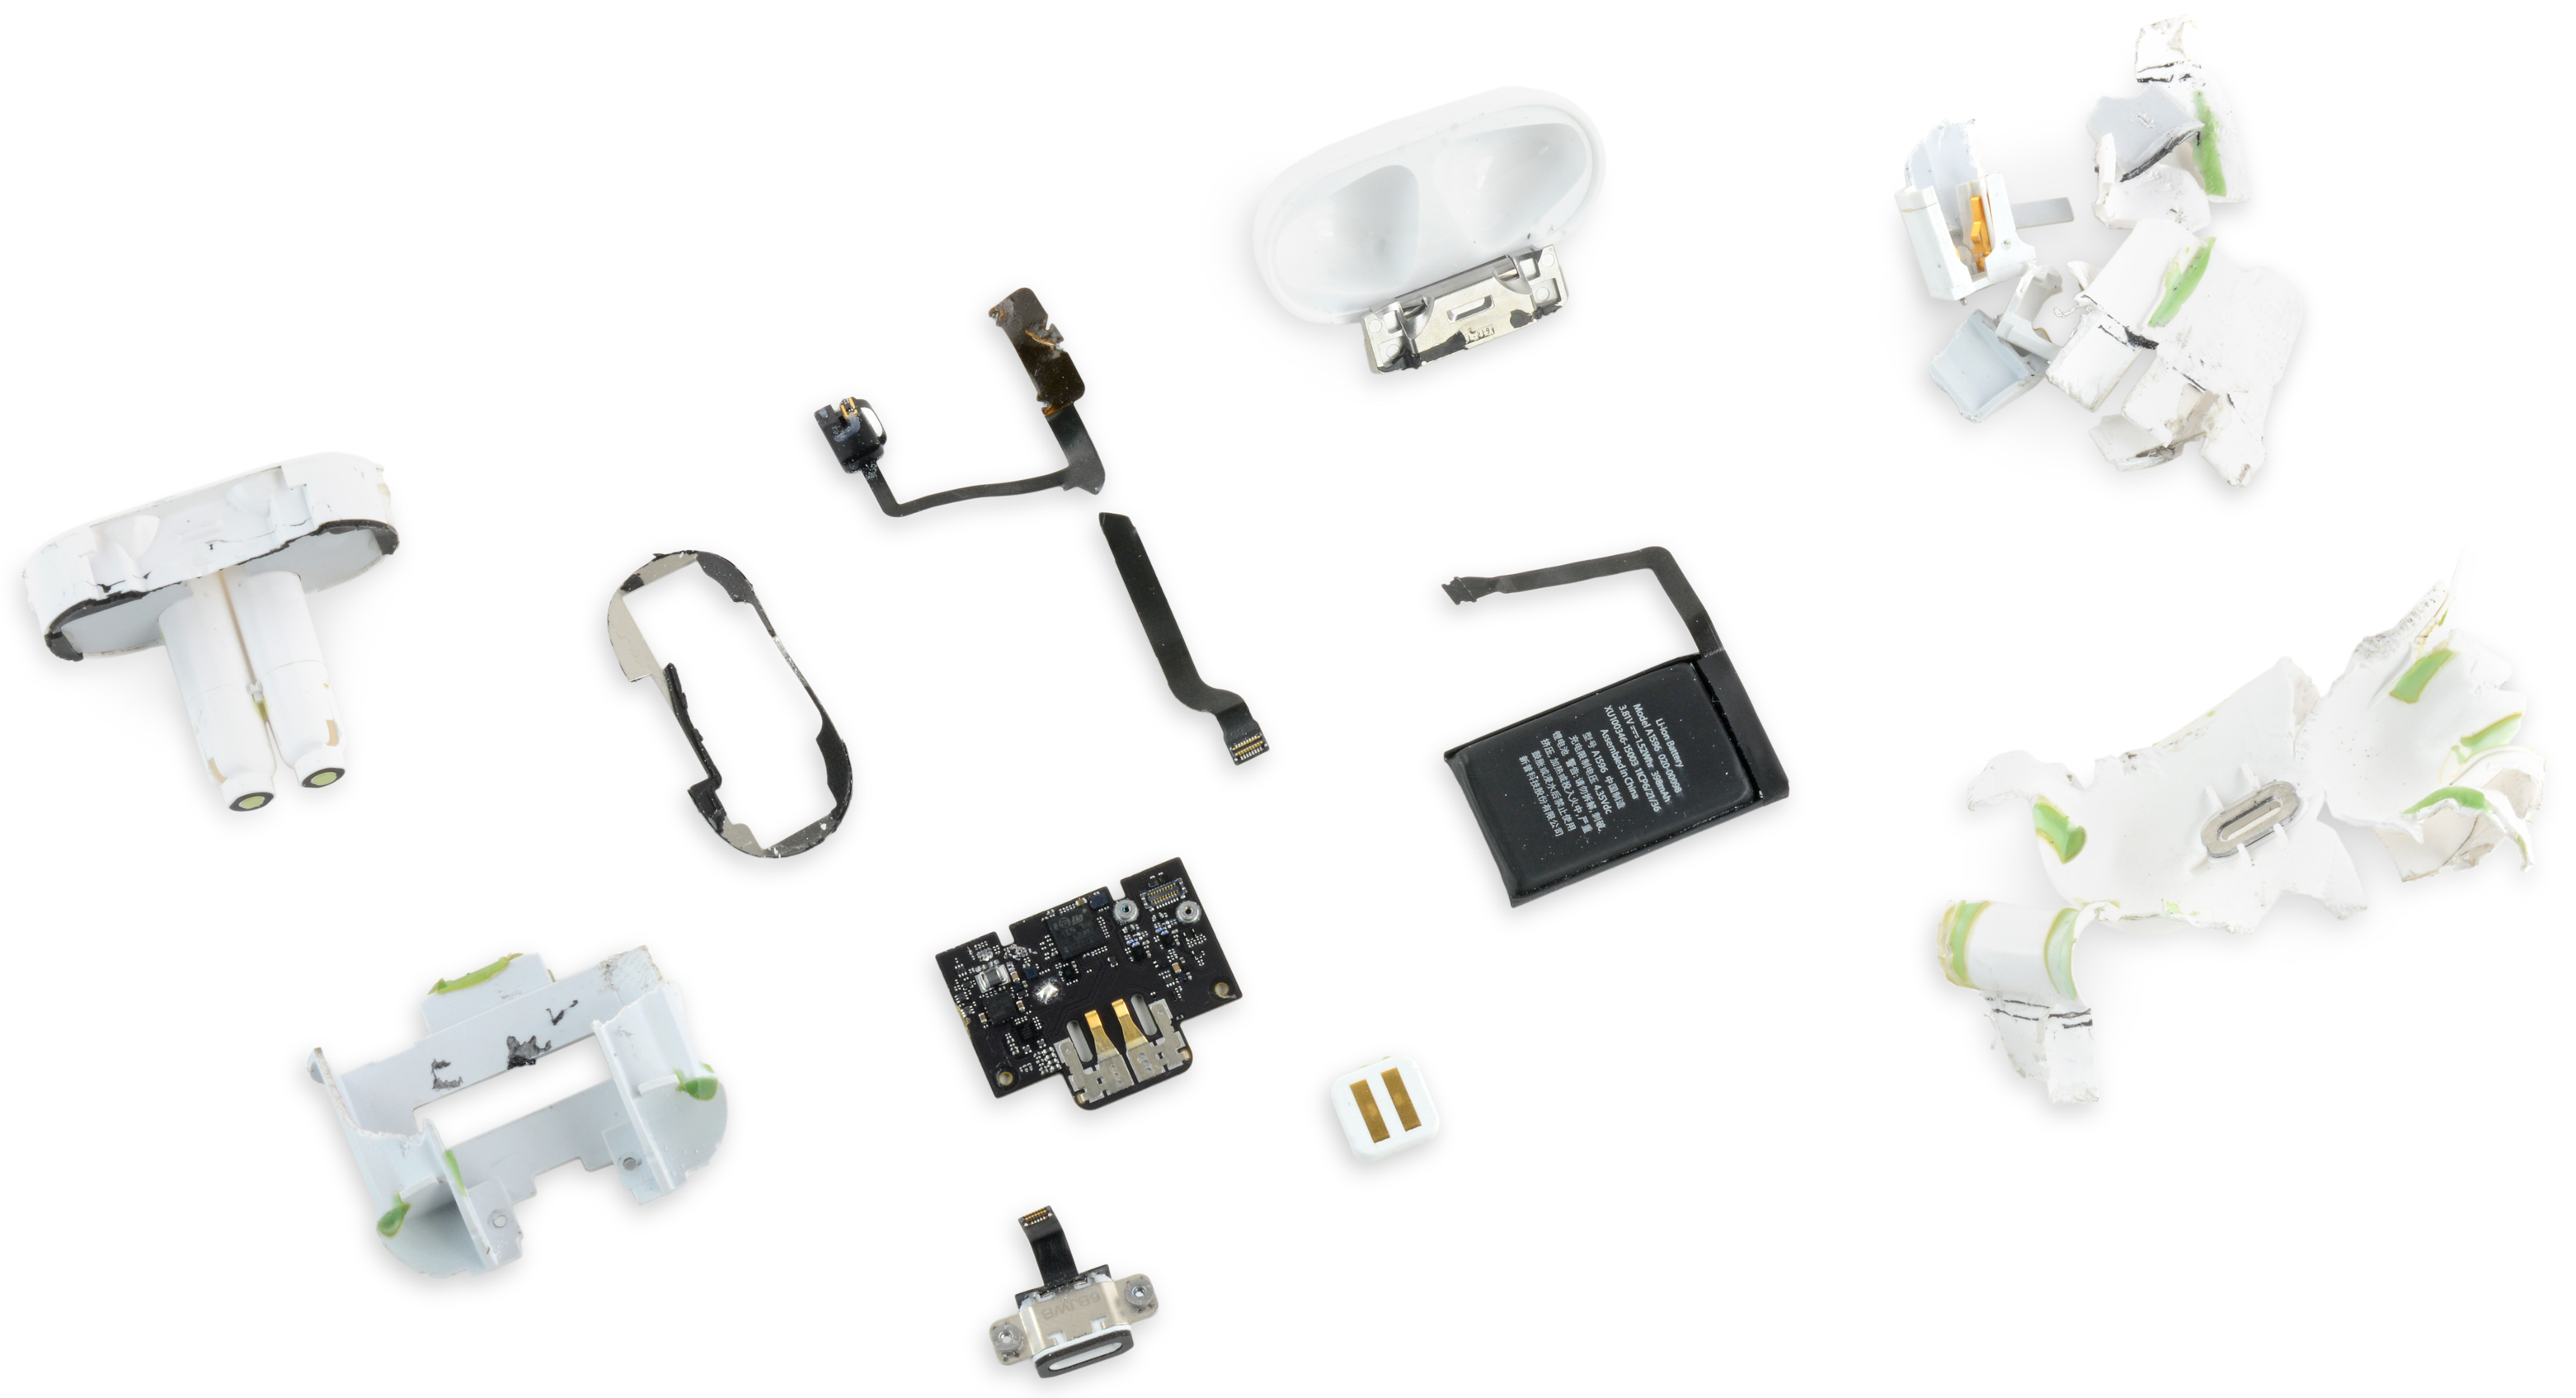 AirPods iFixit image 001